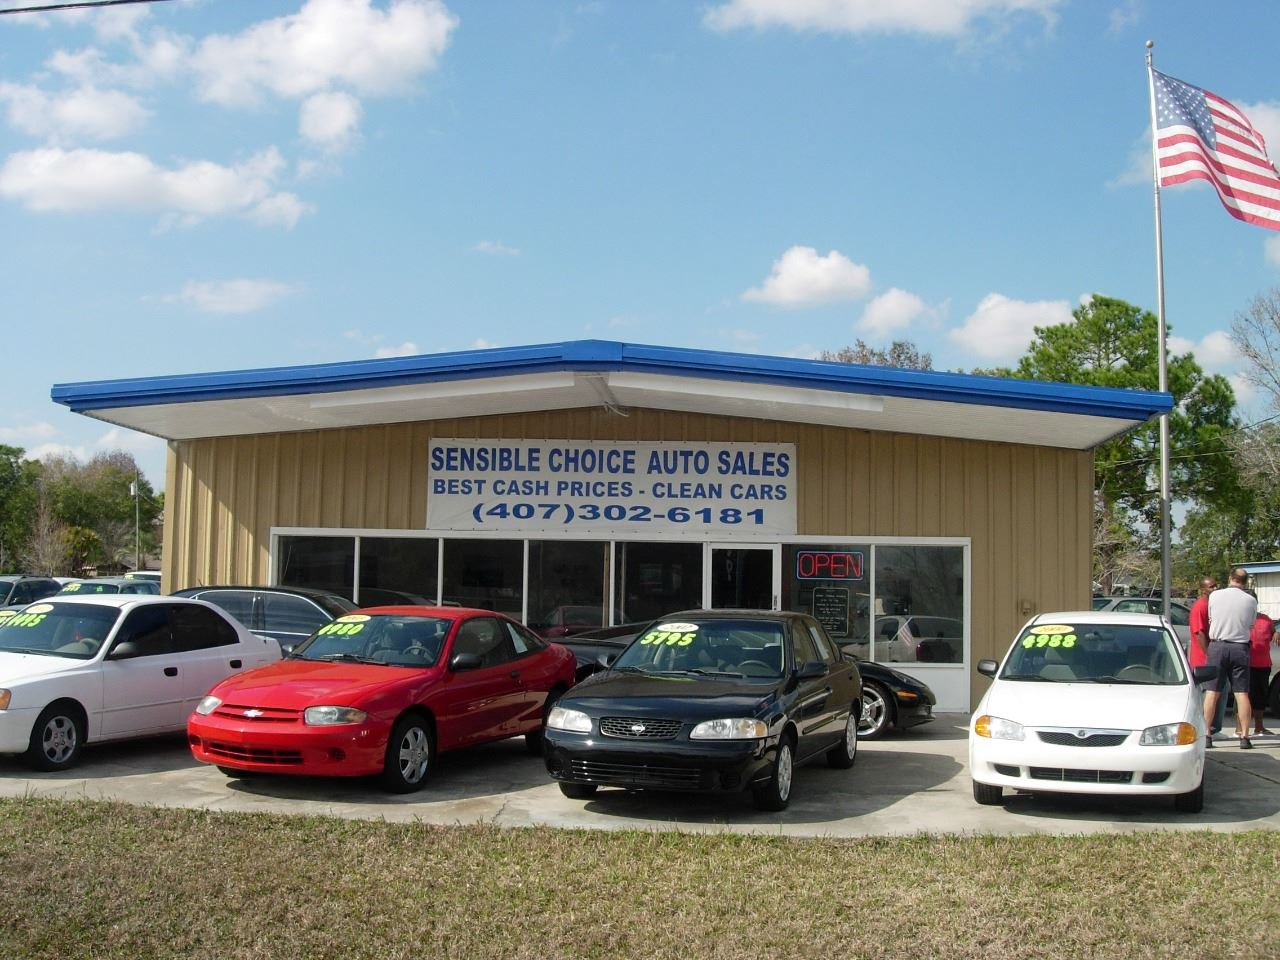 Sensible Choice Auto Sales, Inc.